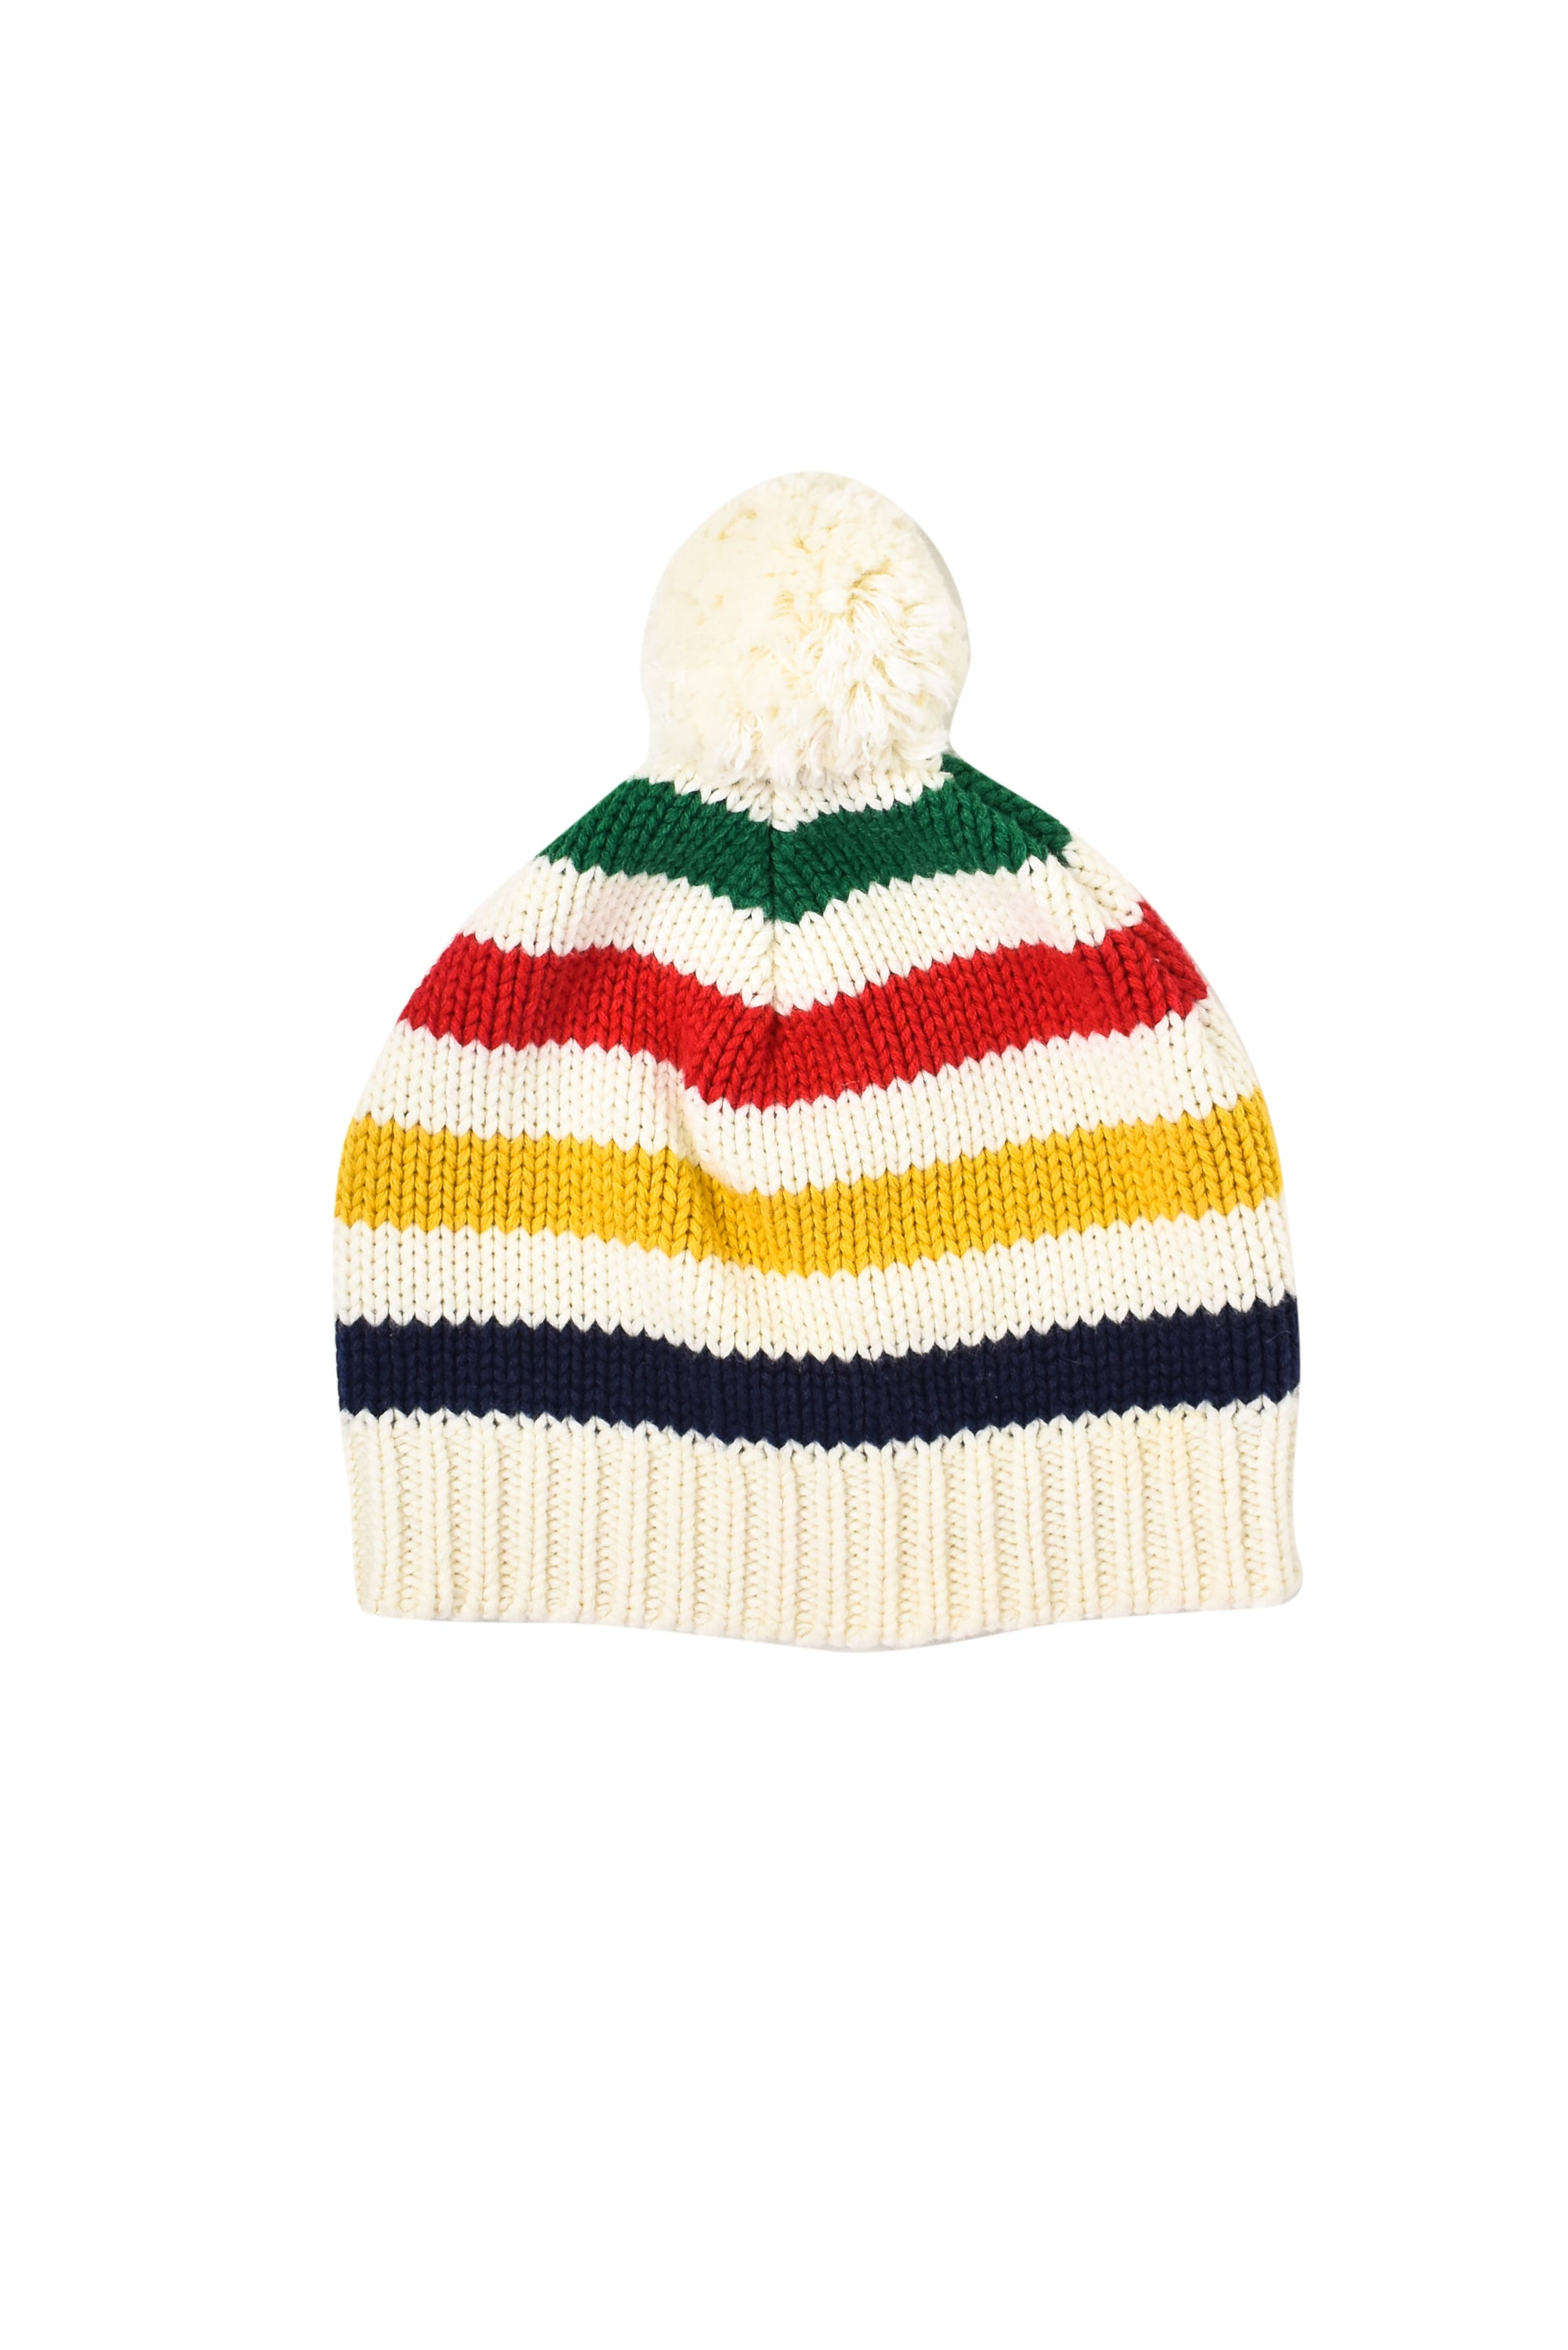 10007238 Hudson's Bay Co. Baby~ Beanie 6-12M at Retykle